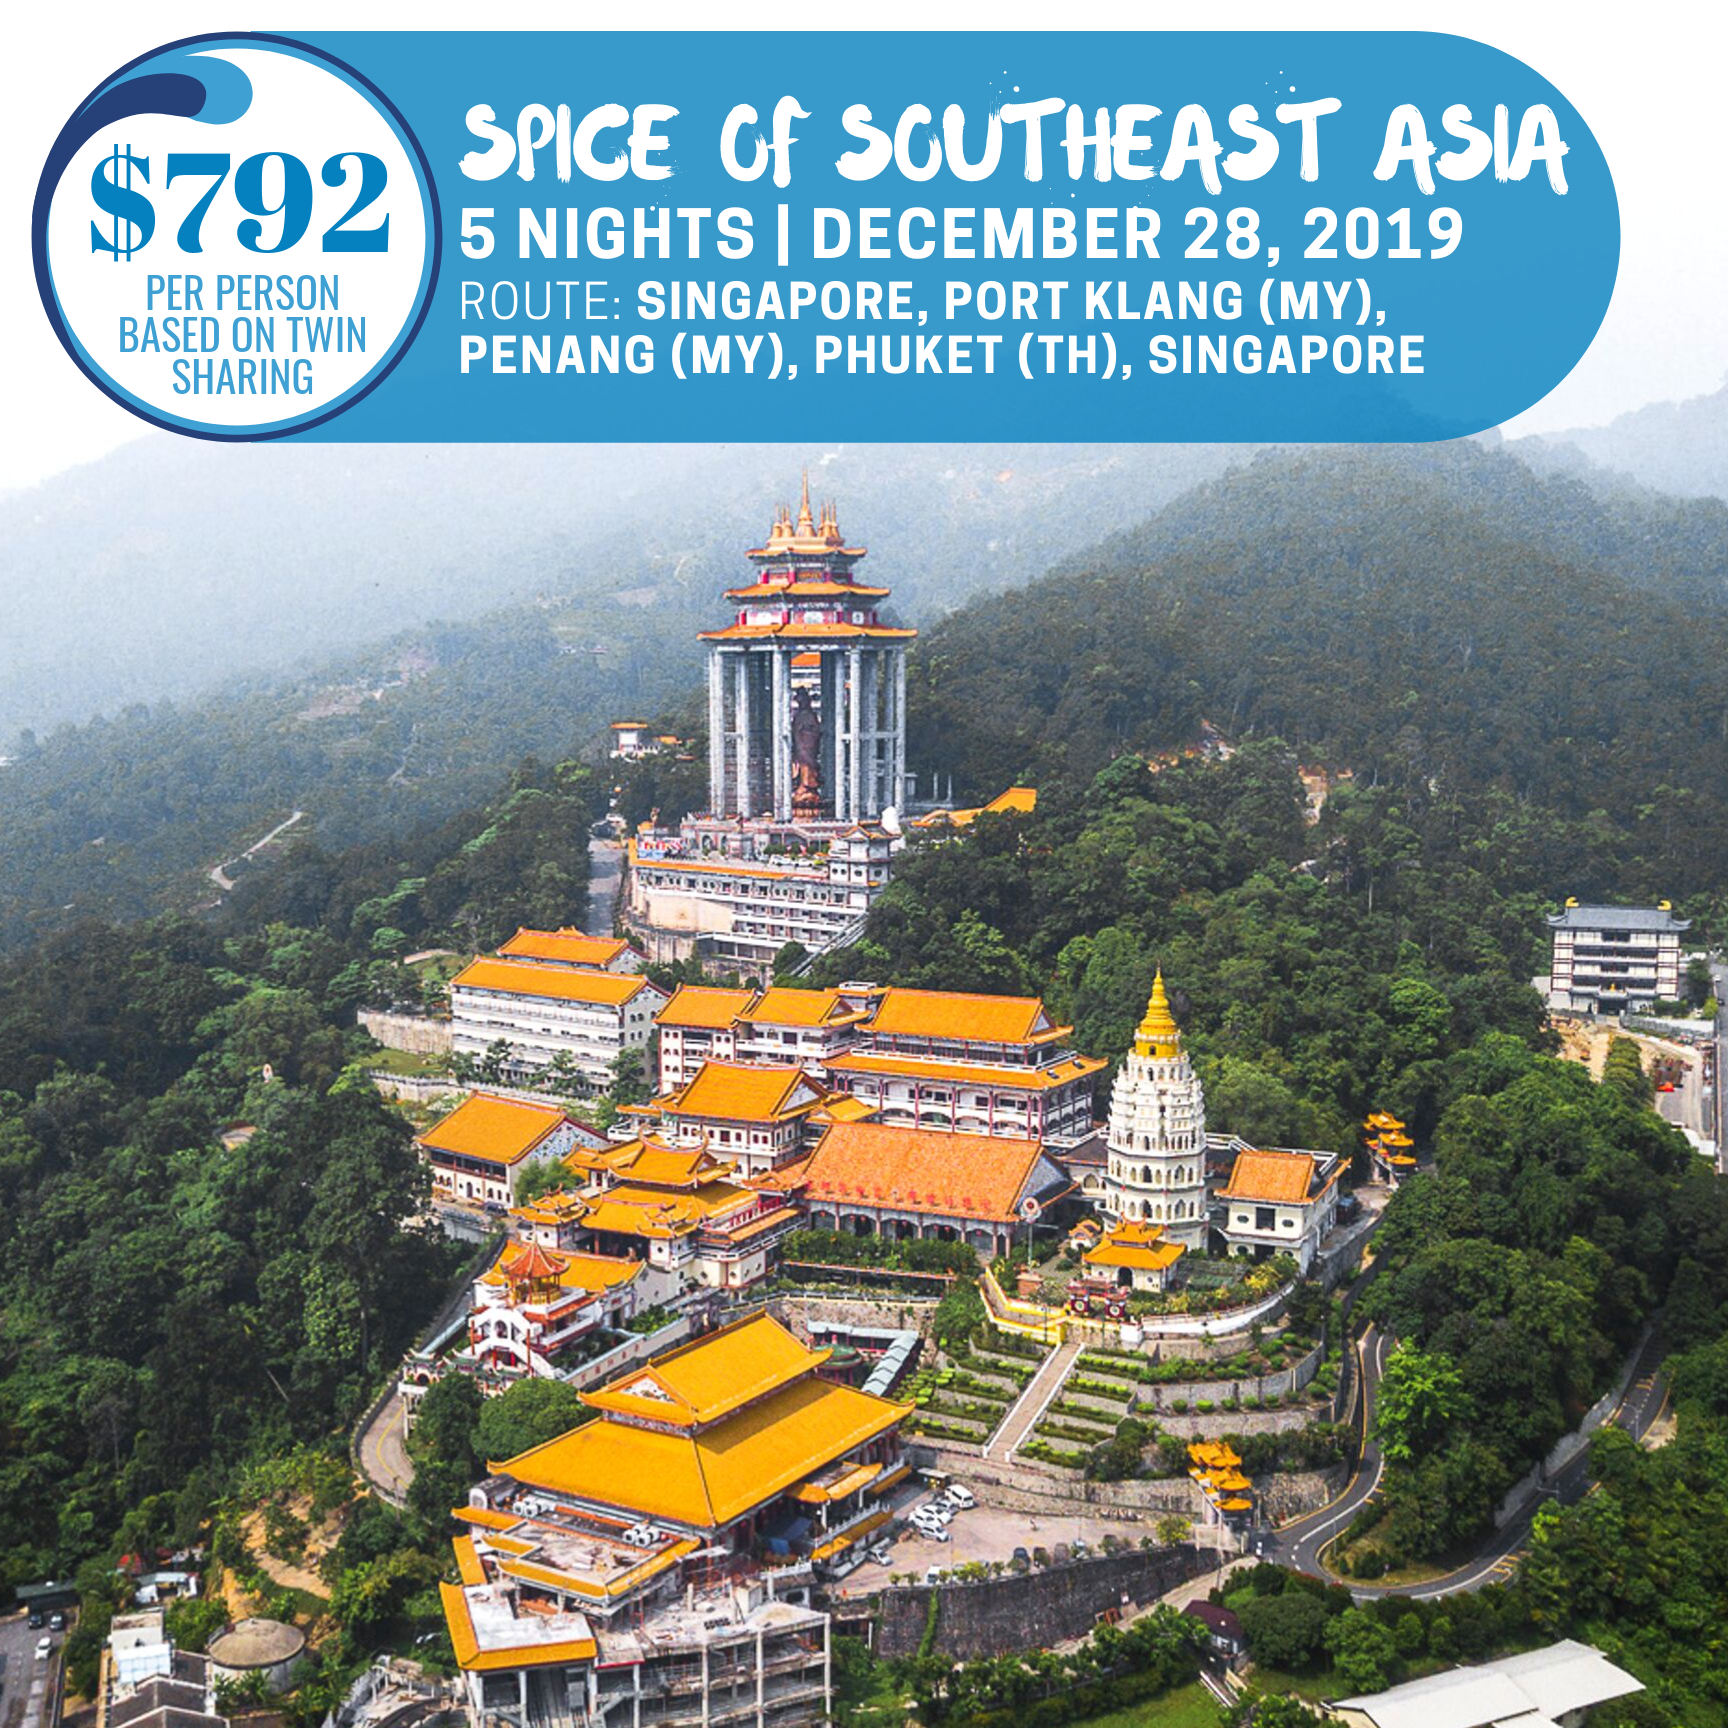 Spice of Southeast Asia (28Dec2019)